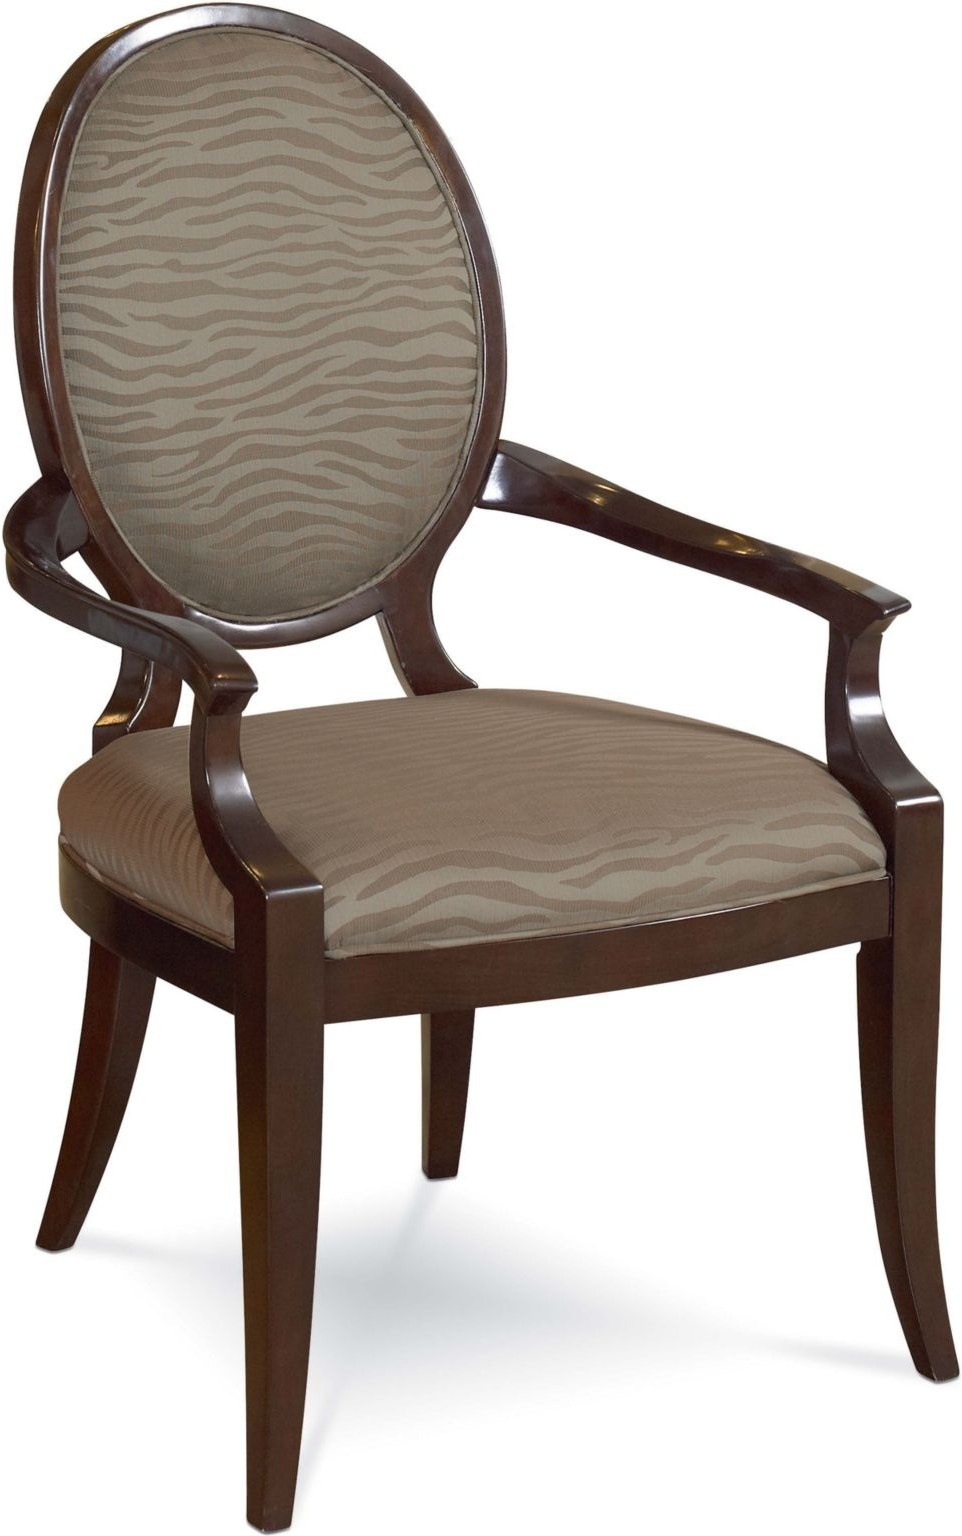 Thomasville Dining Room Upholstered Arm Chair 82221 882  : 82221 882 from www.hickoryfurniture.com size 1024 x 768 jpeg 29kB